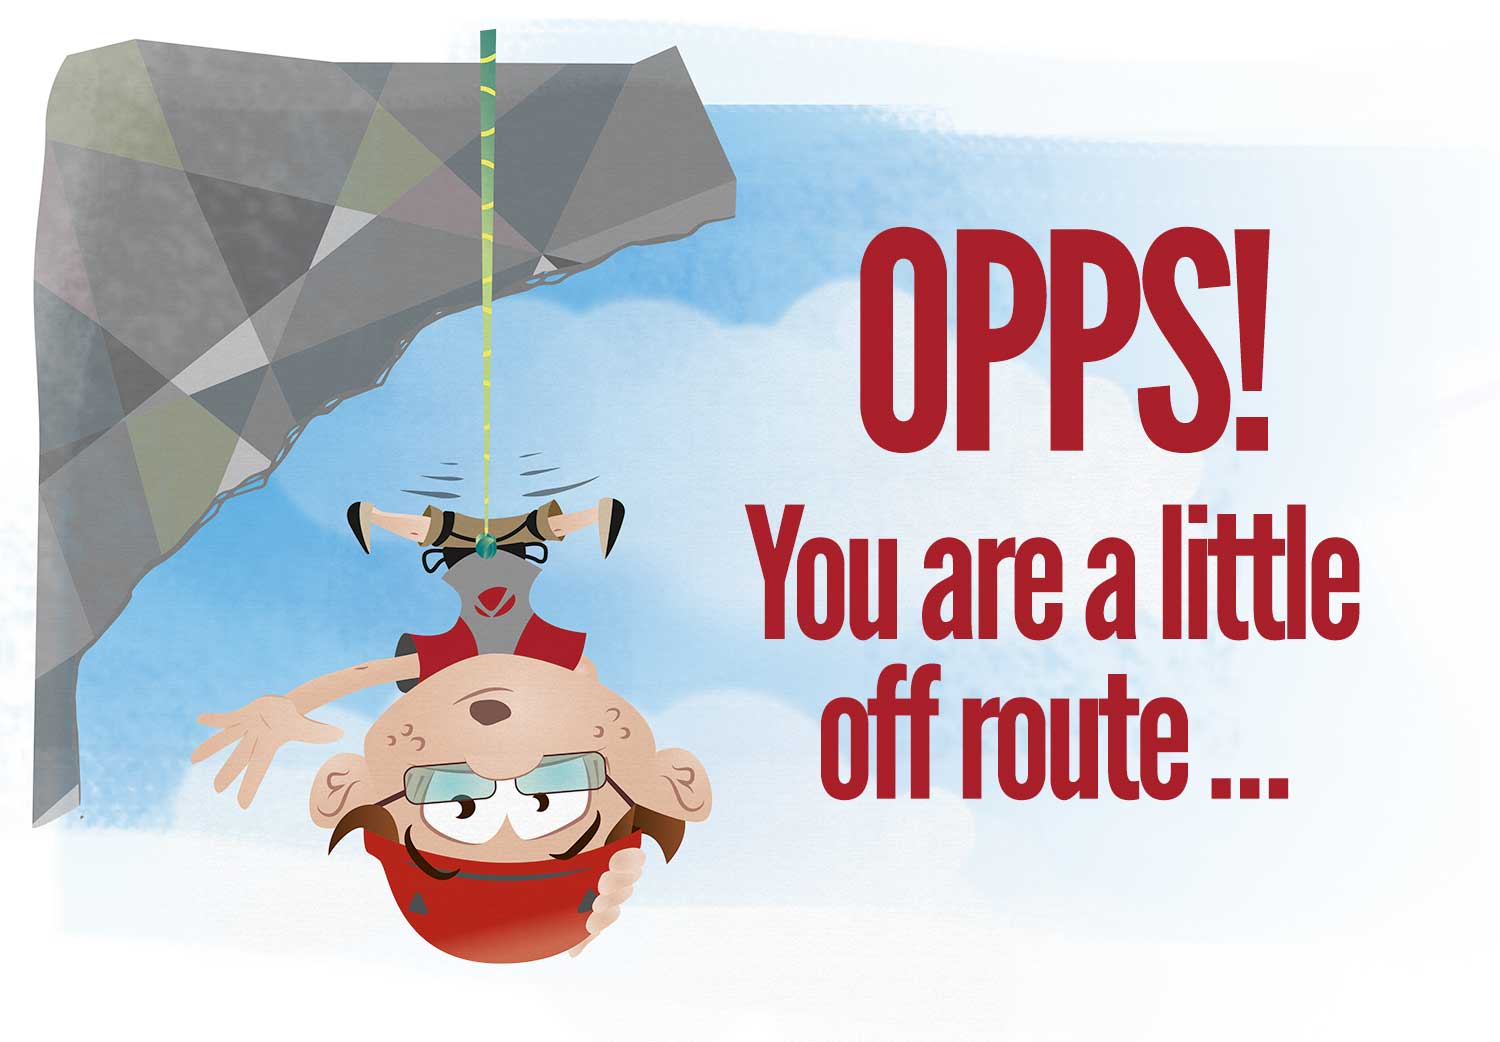 Opps - you are a little off route - 404!